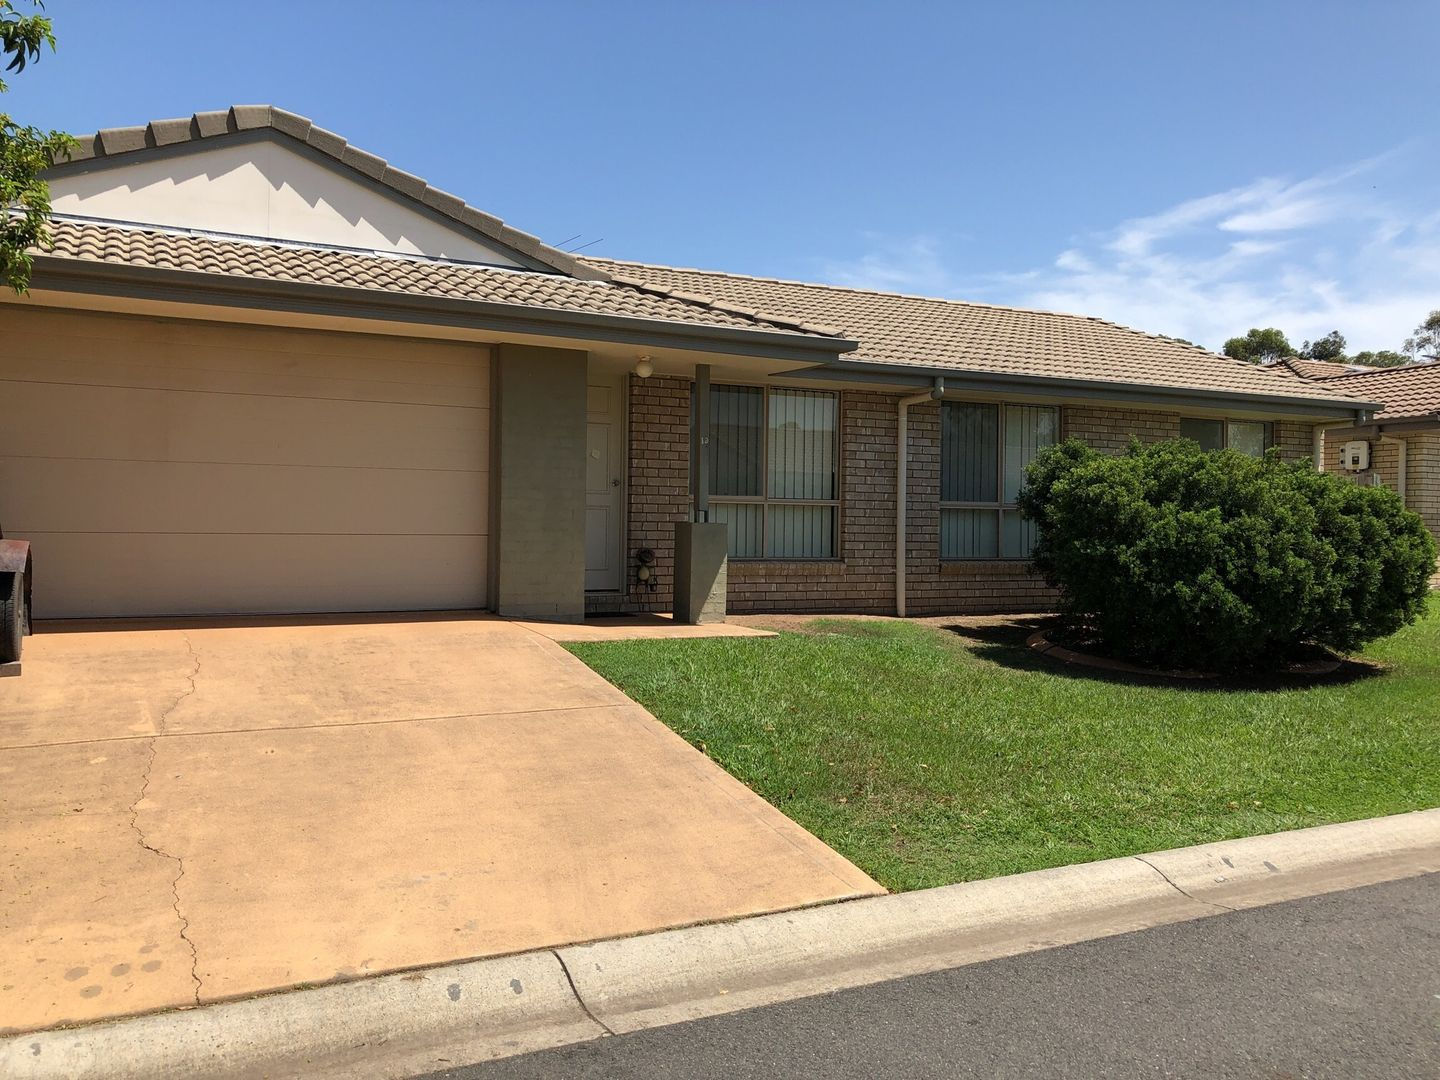 19/114-116 Del Rosso Road, Caboolture QLD 4510, Image 0